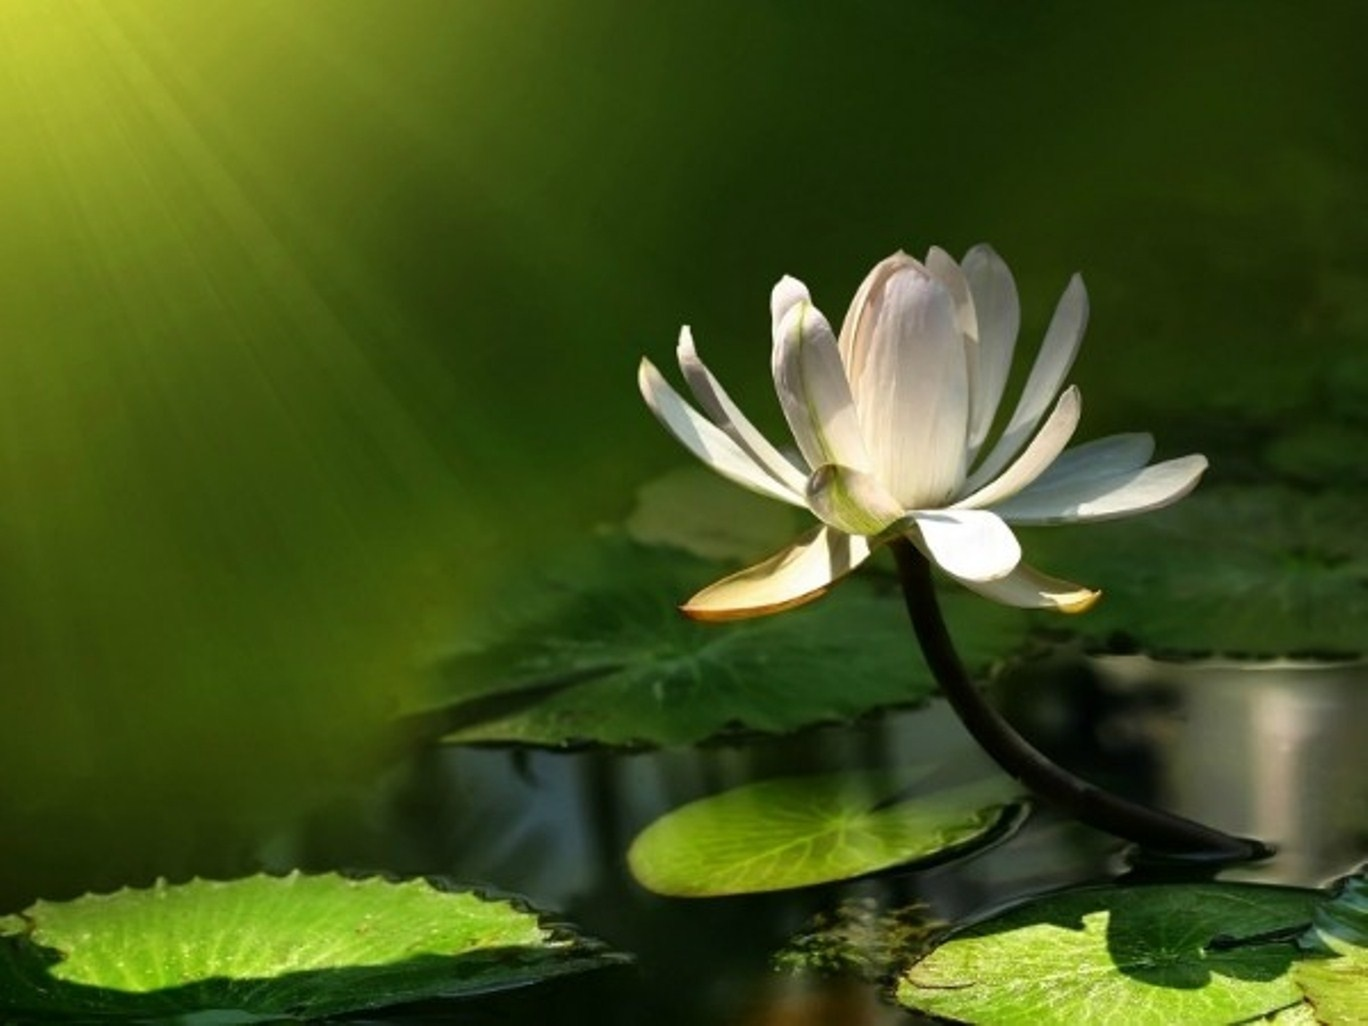 Lotus wallpapers hd 1885